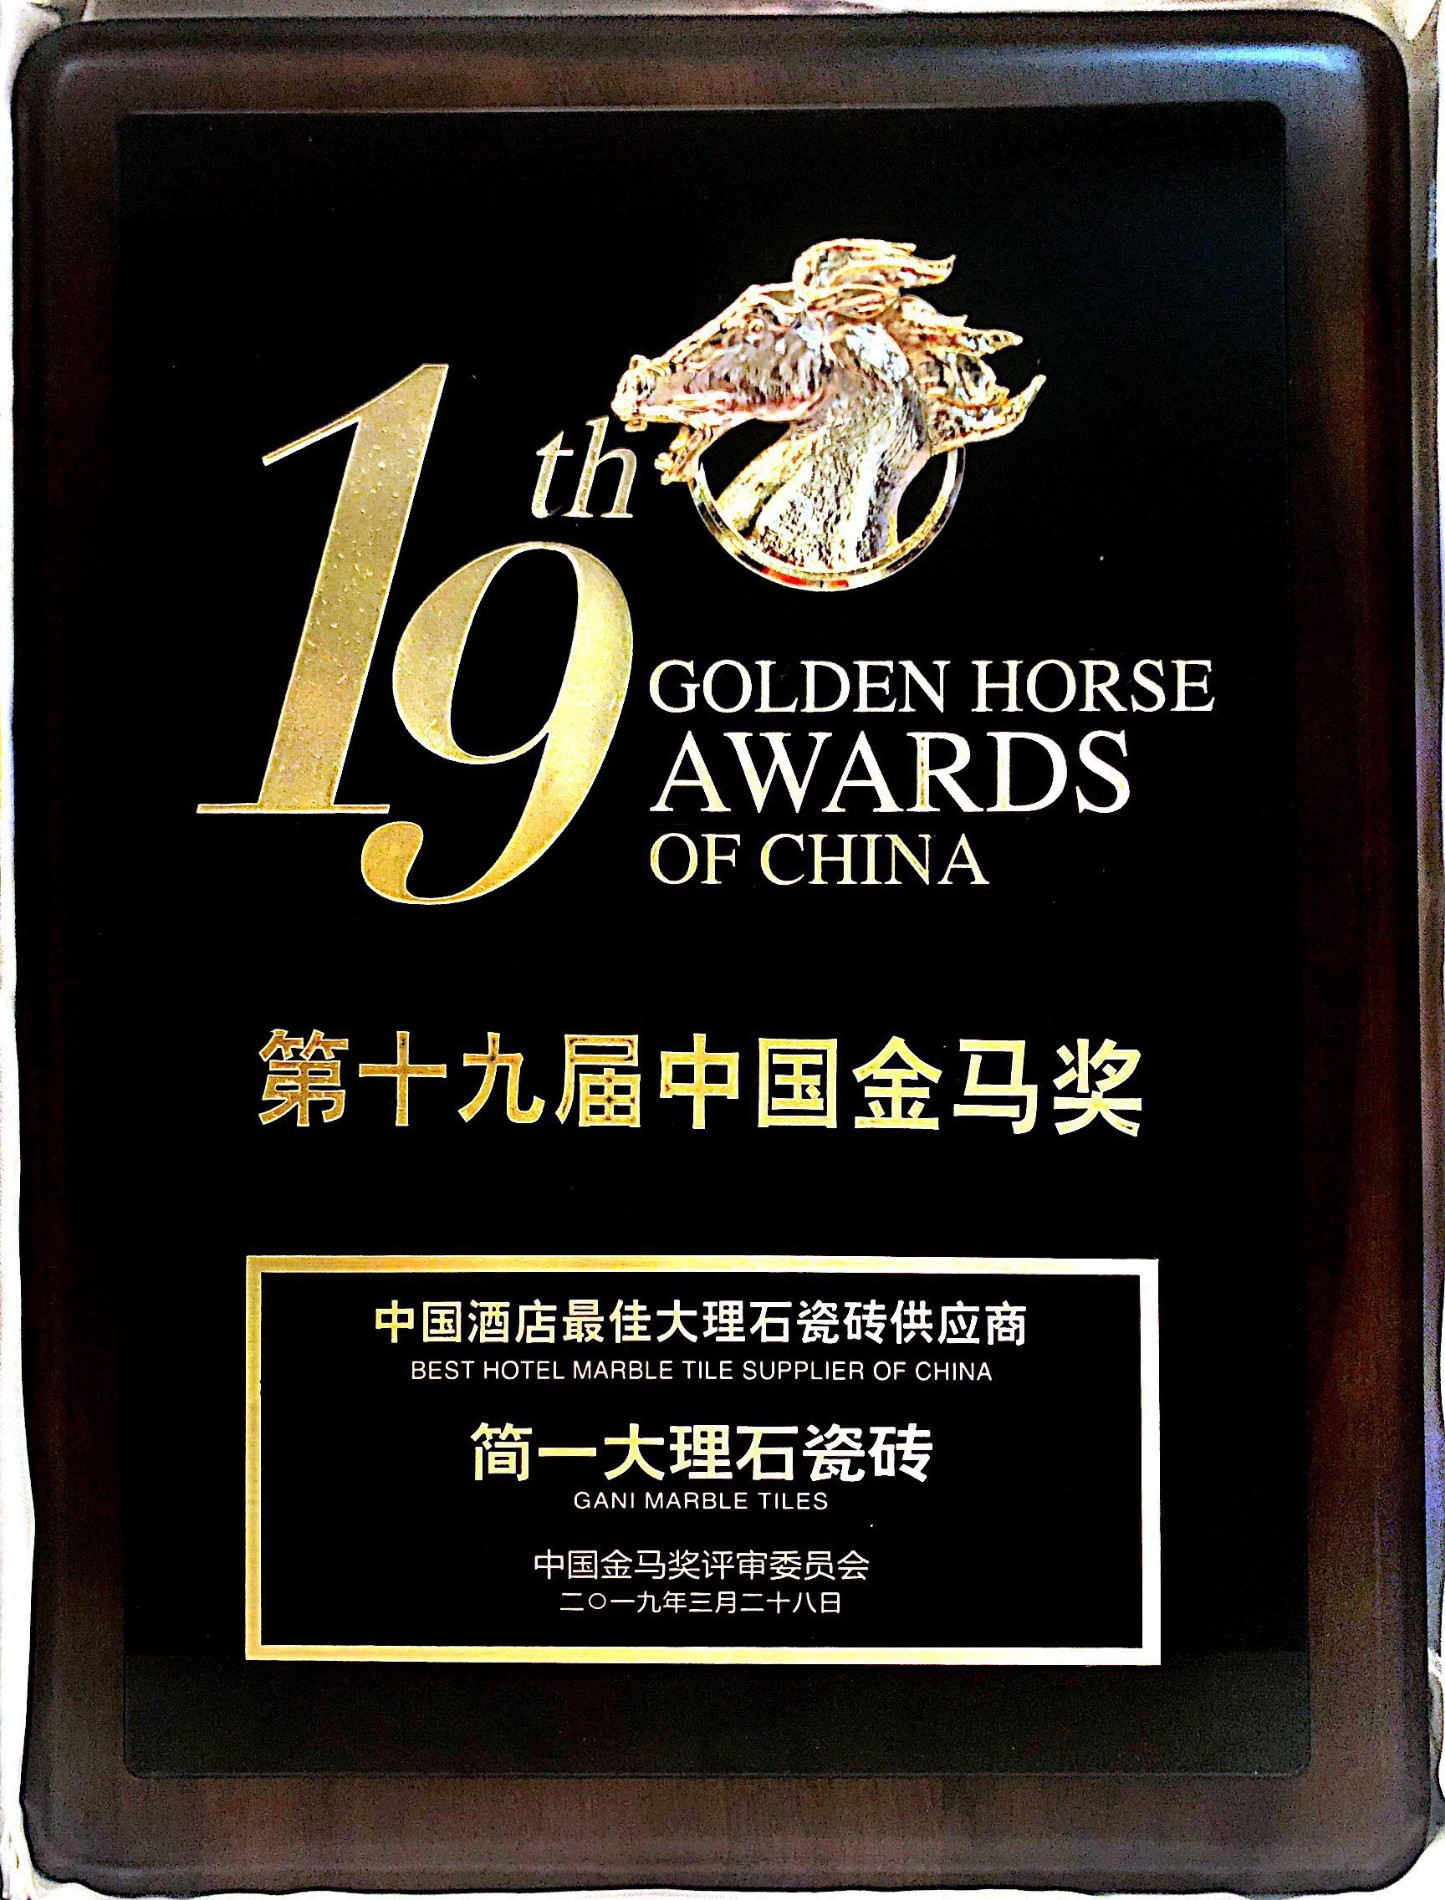 19th Best Hotel Marble Tile Supplier of China by China Golden Horse Awards